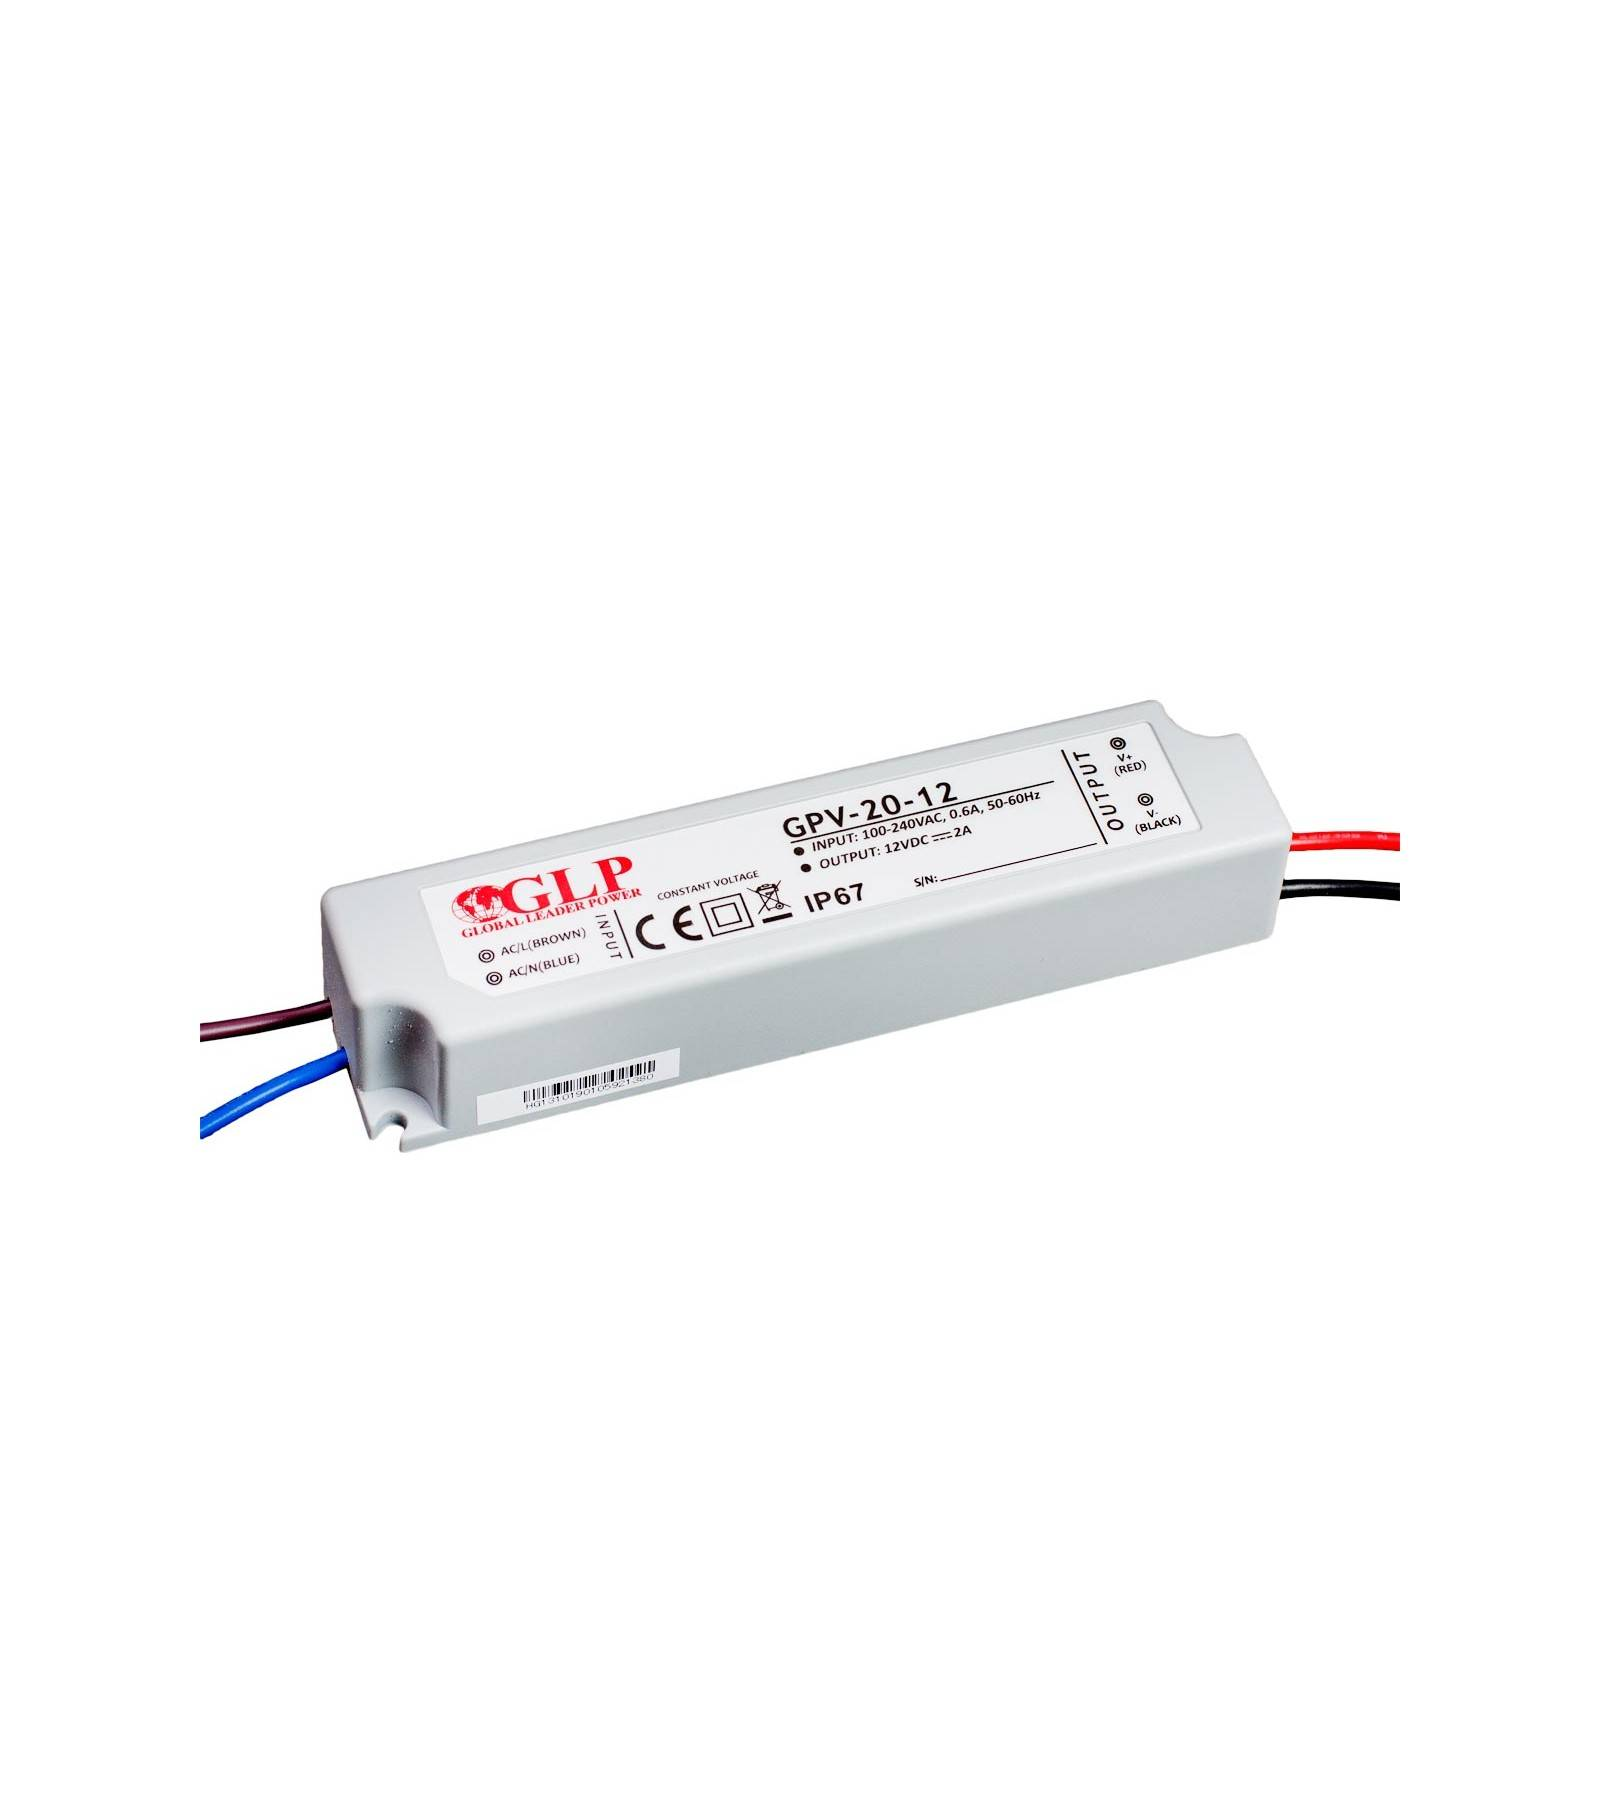 Transformateur sp/écial Led de 12W GPV-18-12 GLP